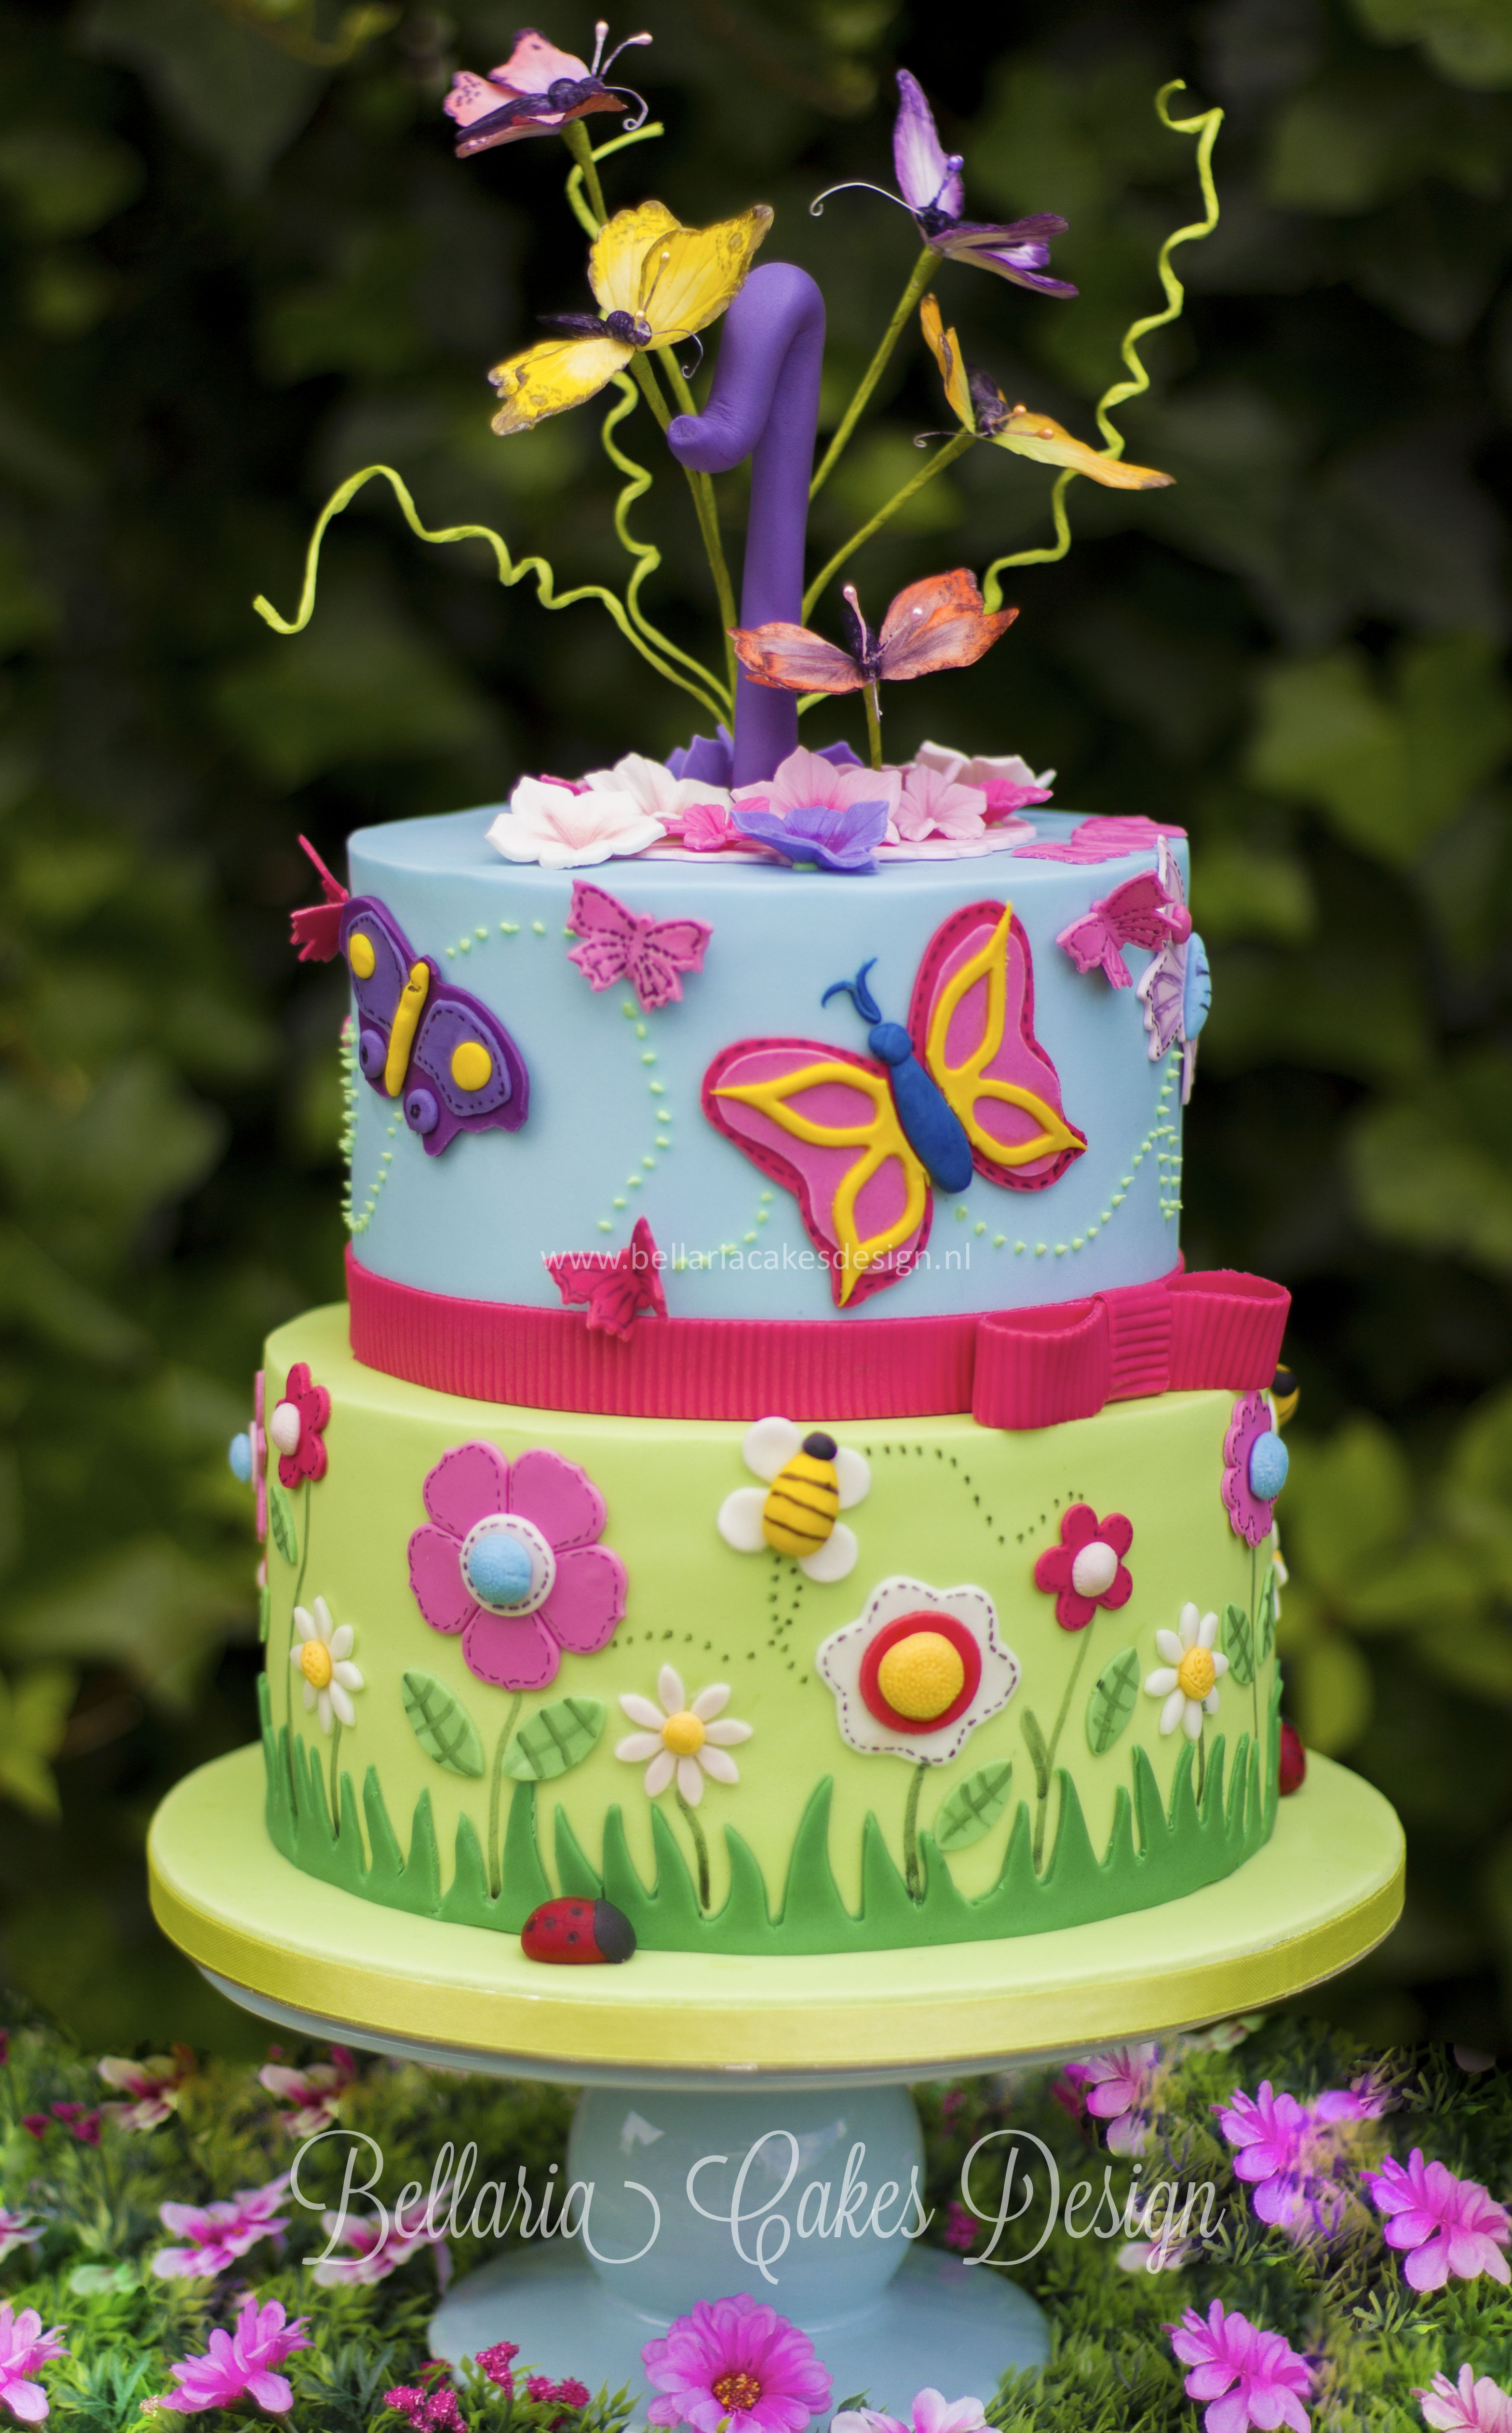 butterflies garden birthday cake butterflies garden themed cake for the very first birthday of a little girl used bright colors and decorated the top